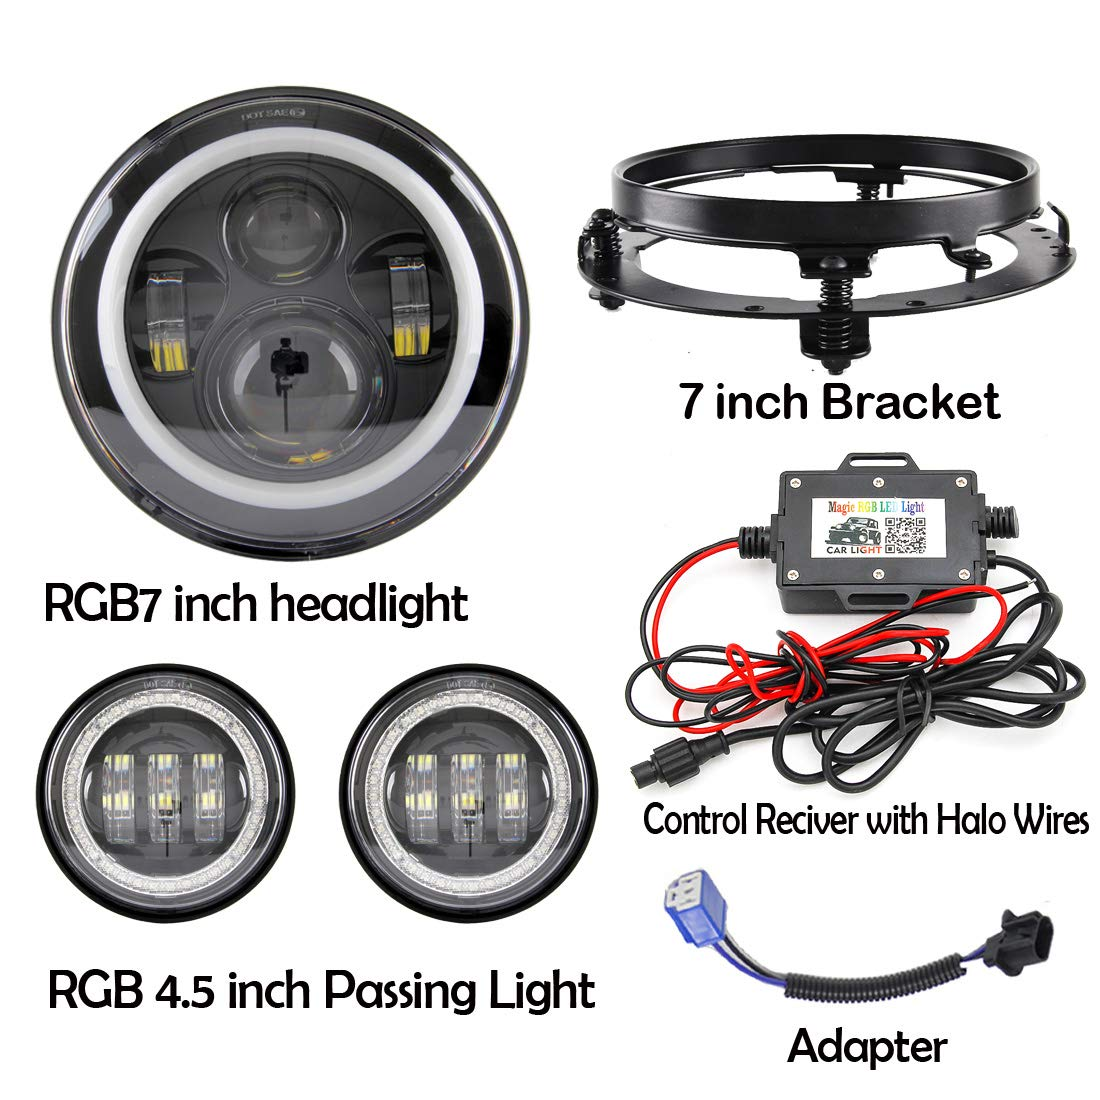 7 LED Headlights RGB Halo with Bluetooth Remote with a pair Passing Light LED Fog Lamp rgb for Harley Davidson